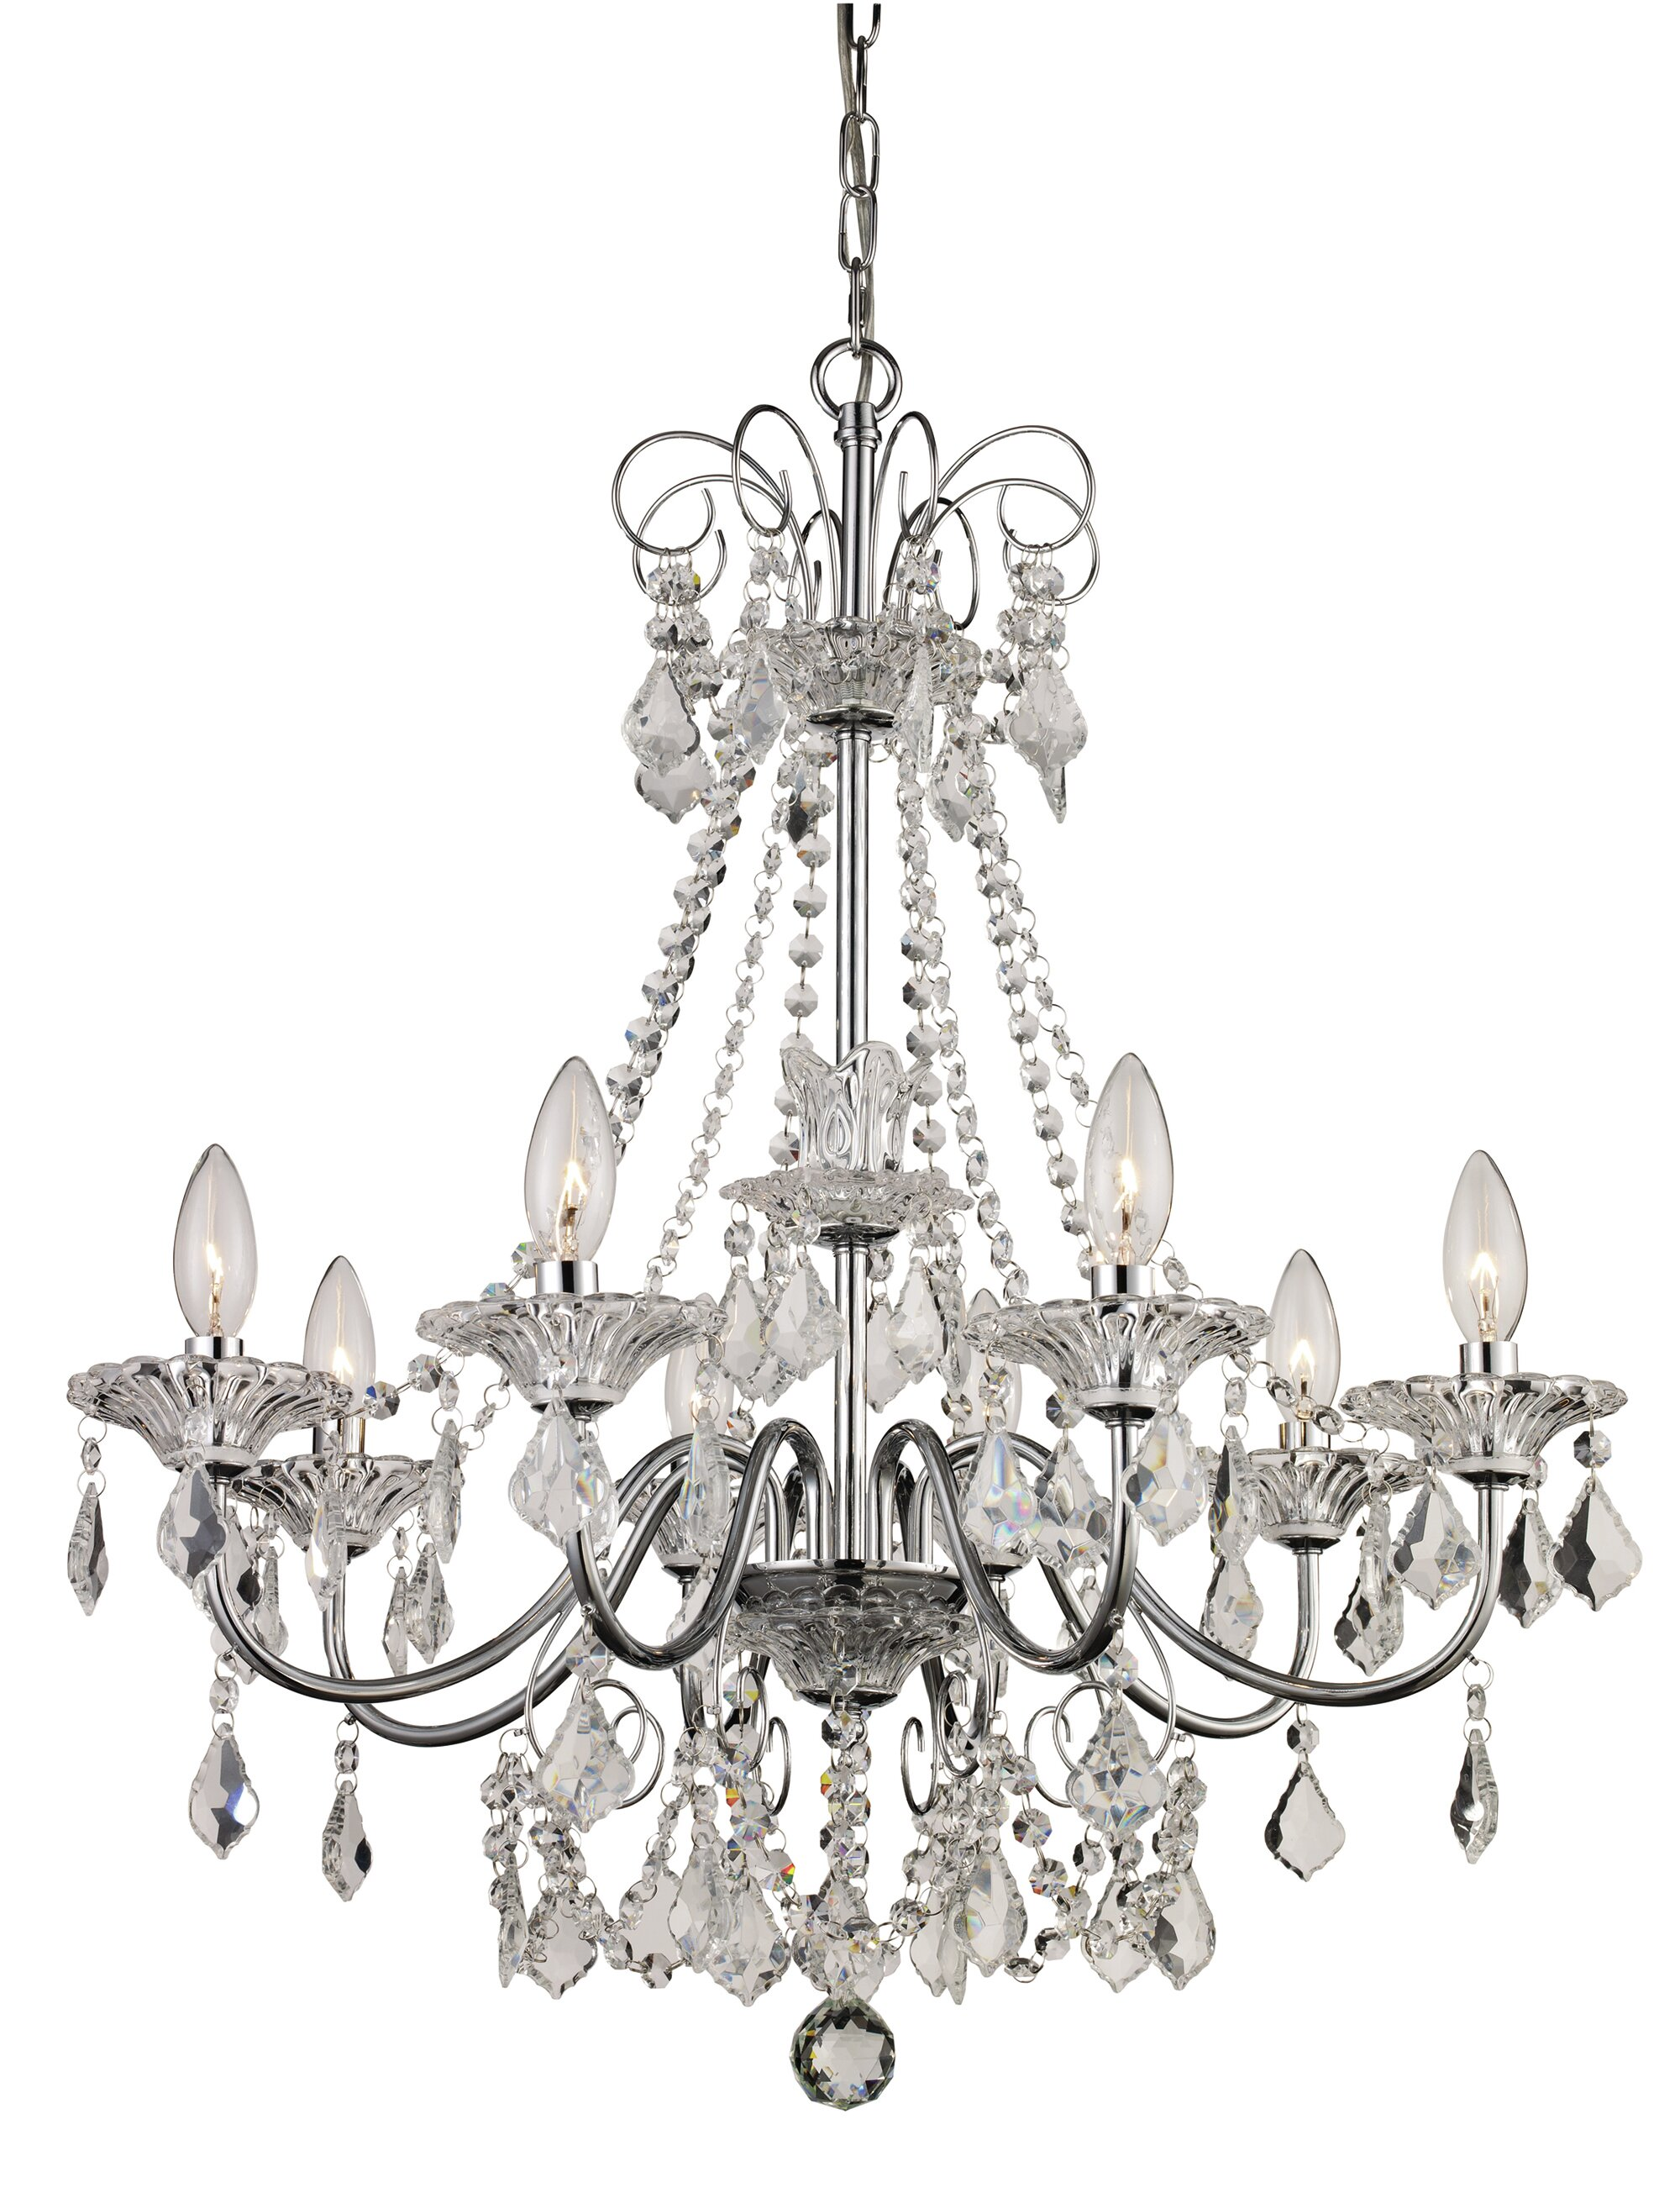 House of Hampton Jeter 8 Light Crystal Chandelier & Reviews